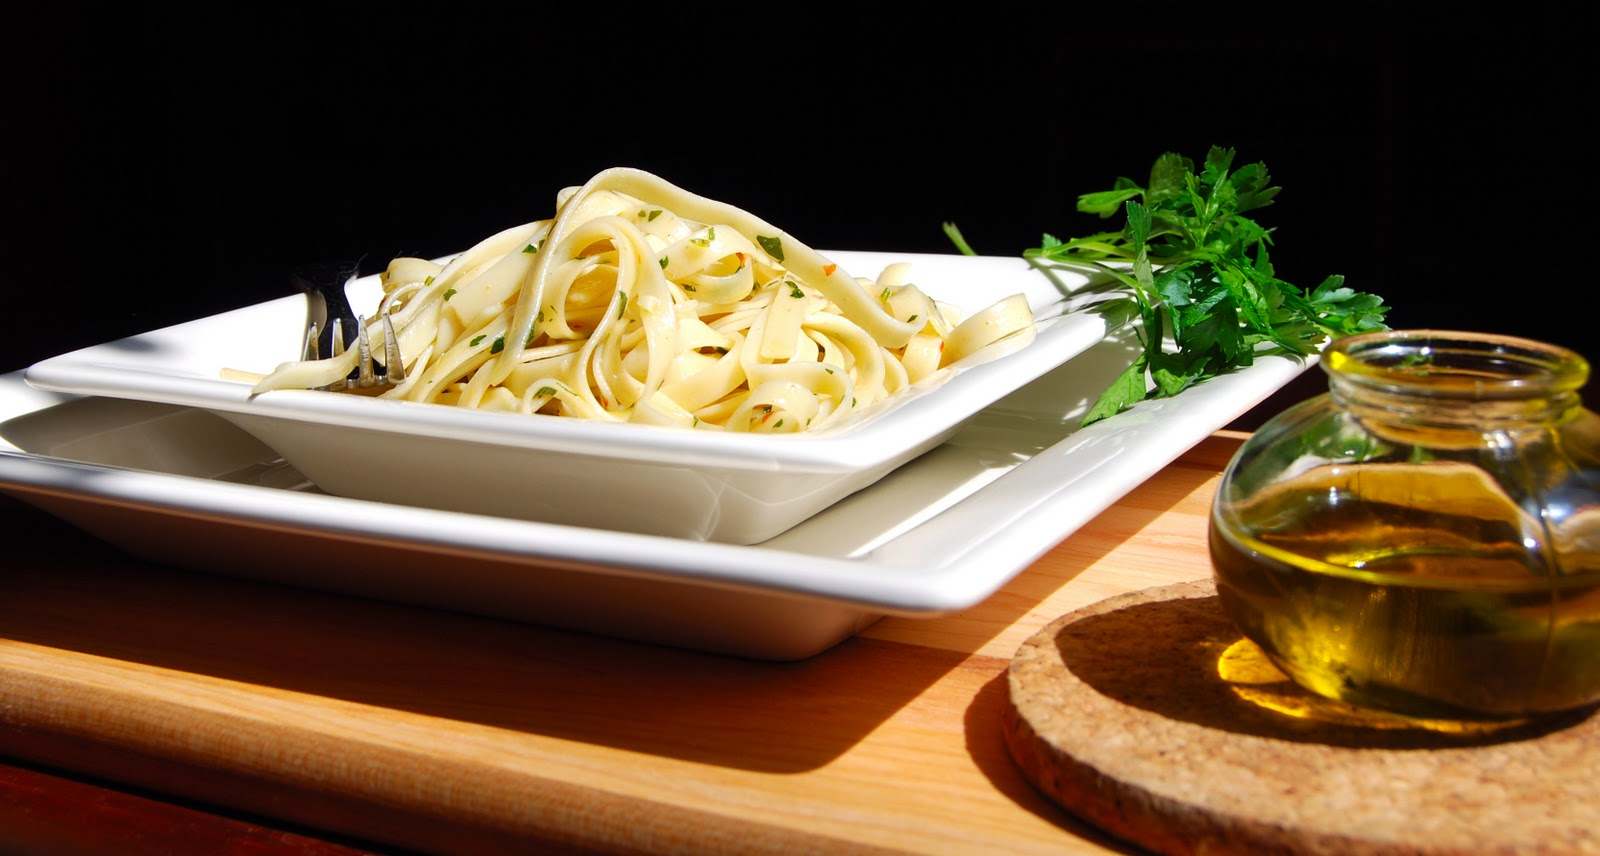 Fettuccine with olive oil and garlic holy cow fettuccine with olive oil and garlic forumfinder Image collections